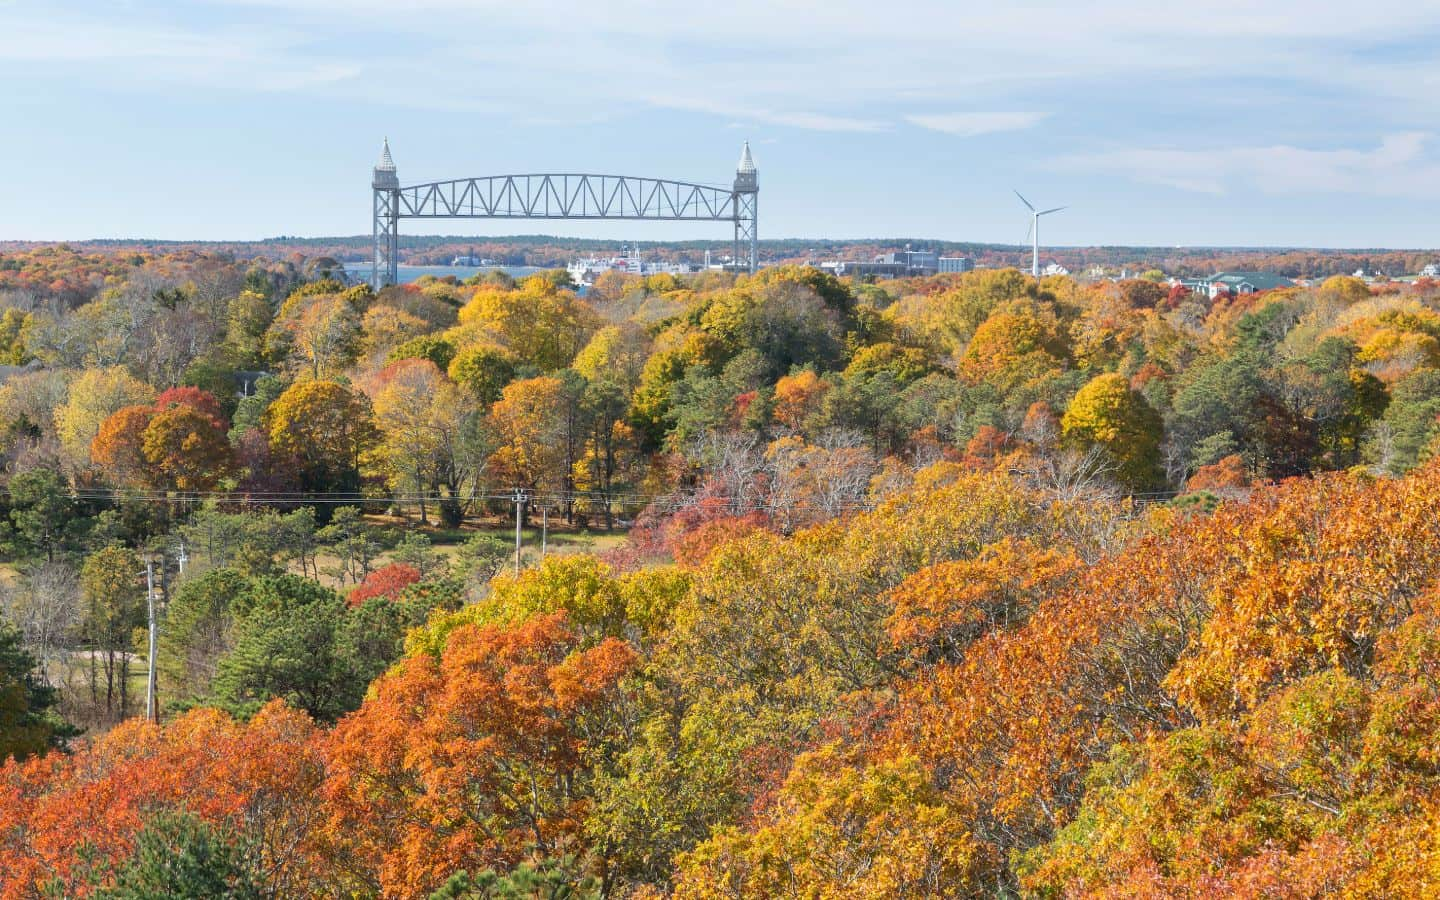 Cape Cod Canal in the Fall near our Cape Cod Inn